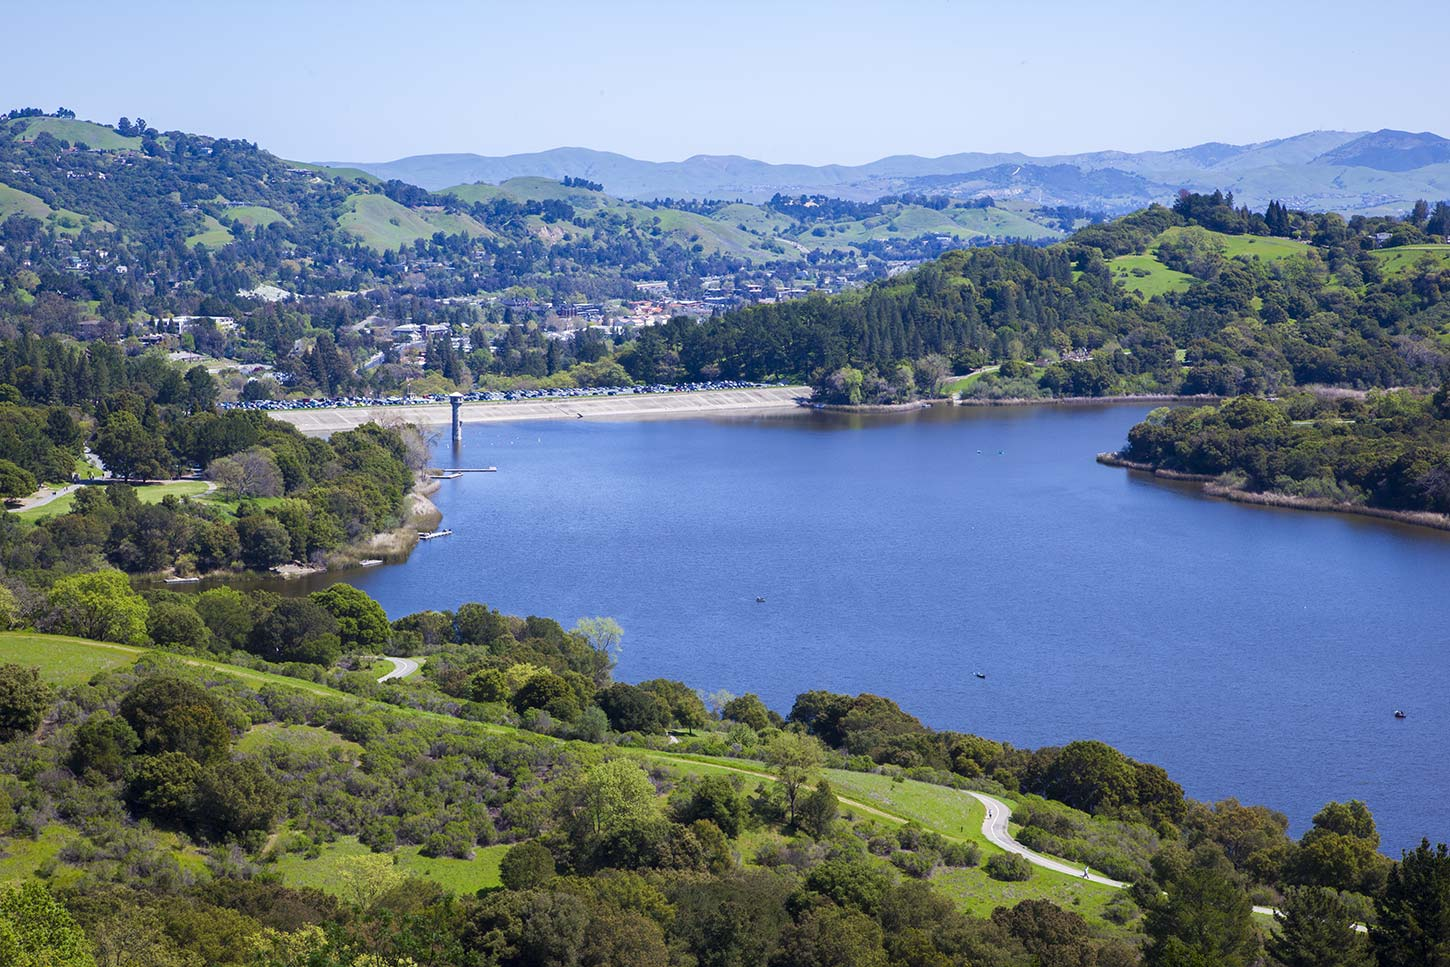 Monday Mindful Walk - A 1-hour group walking event in the beautiful Lafayette Reservoir with a theme to reflect upon. It's open to all types of mothers & women. This event is kid friendly!walk with us